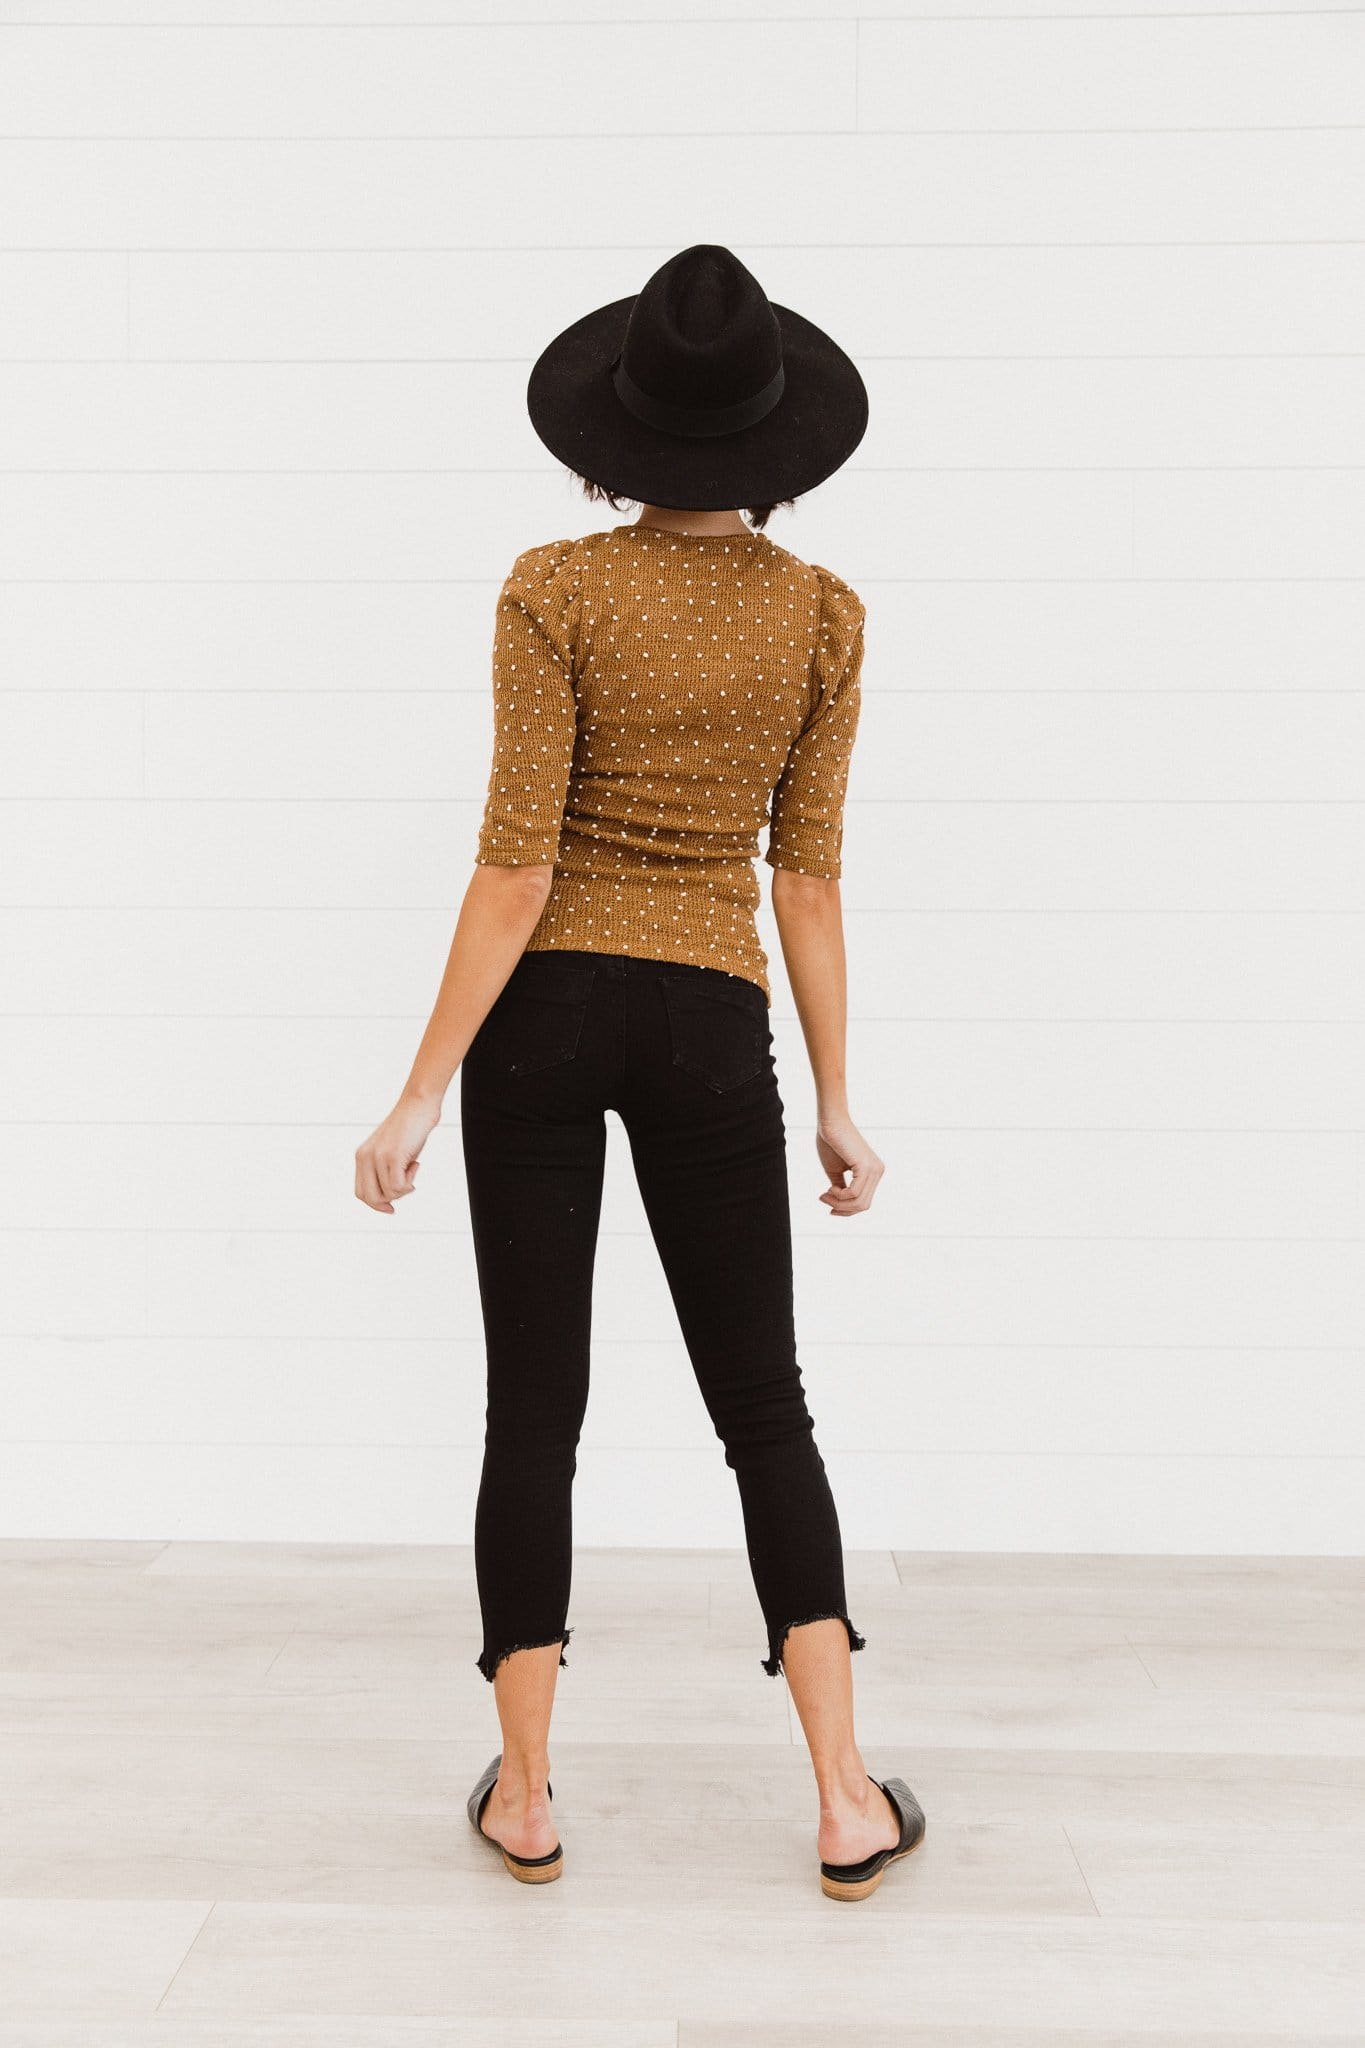 The Fallon Pom Pom Top in Camel